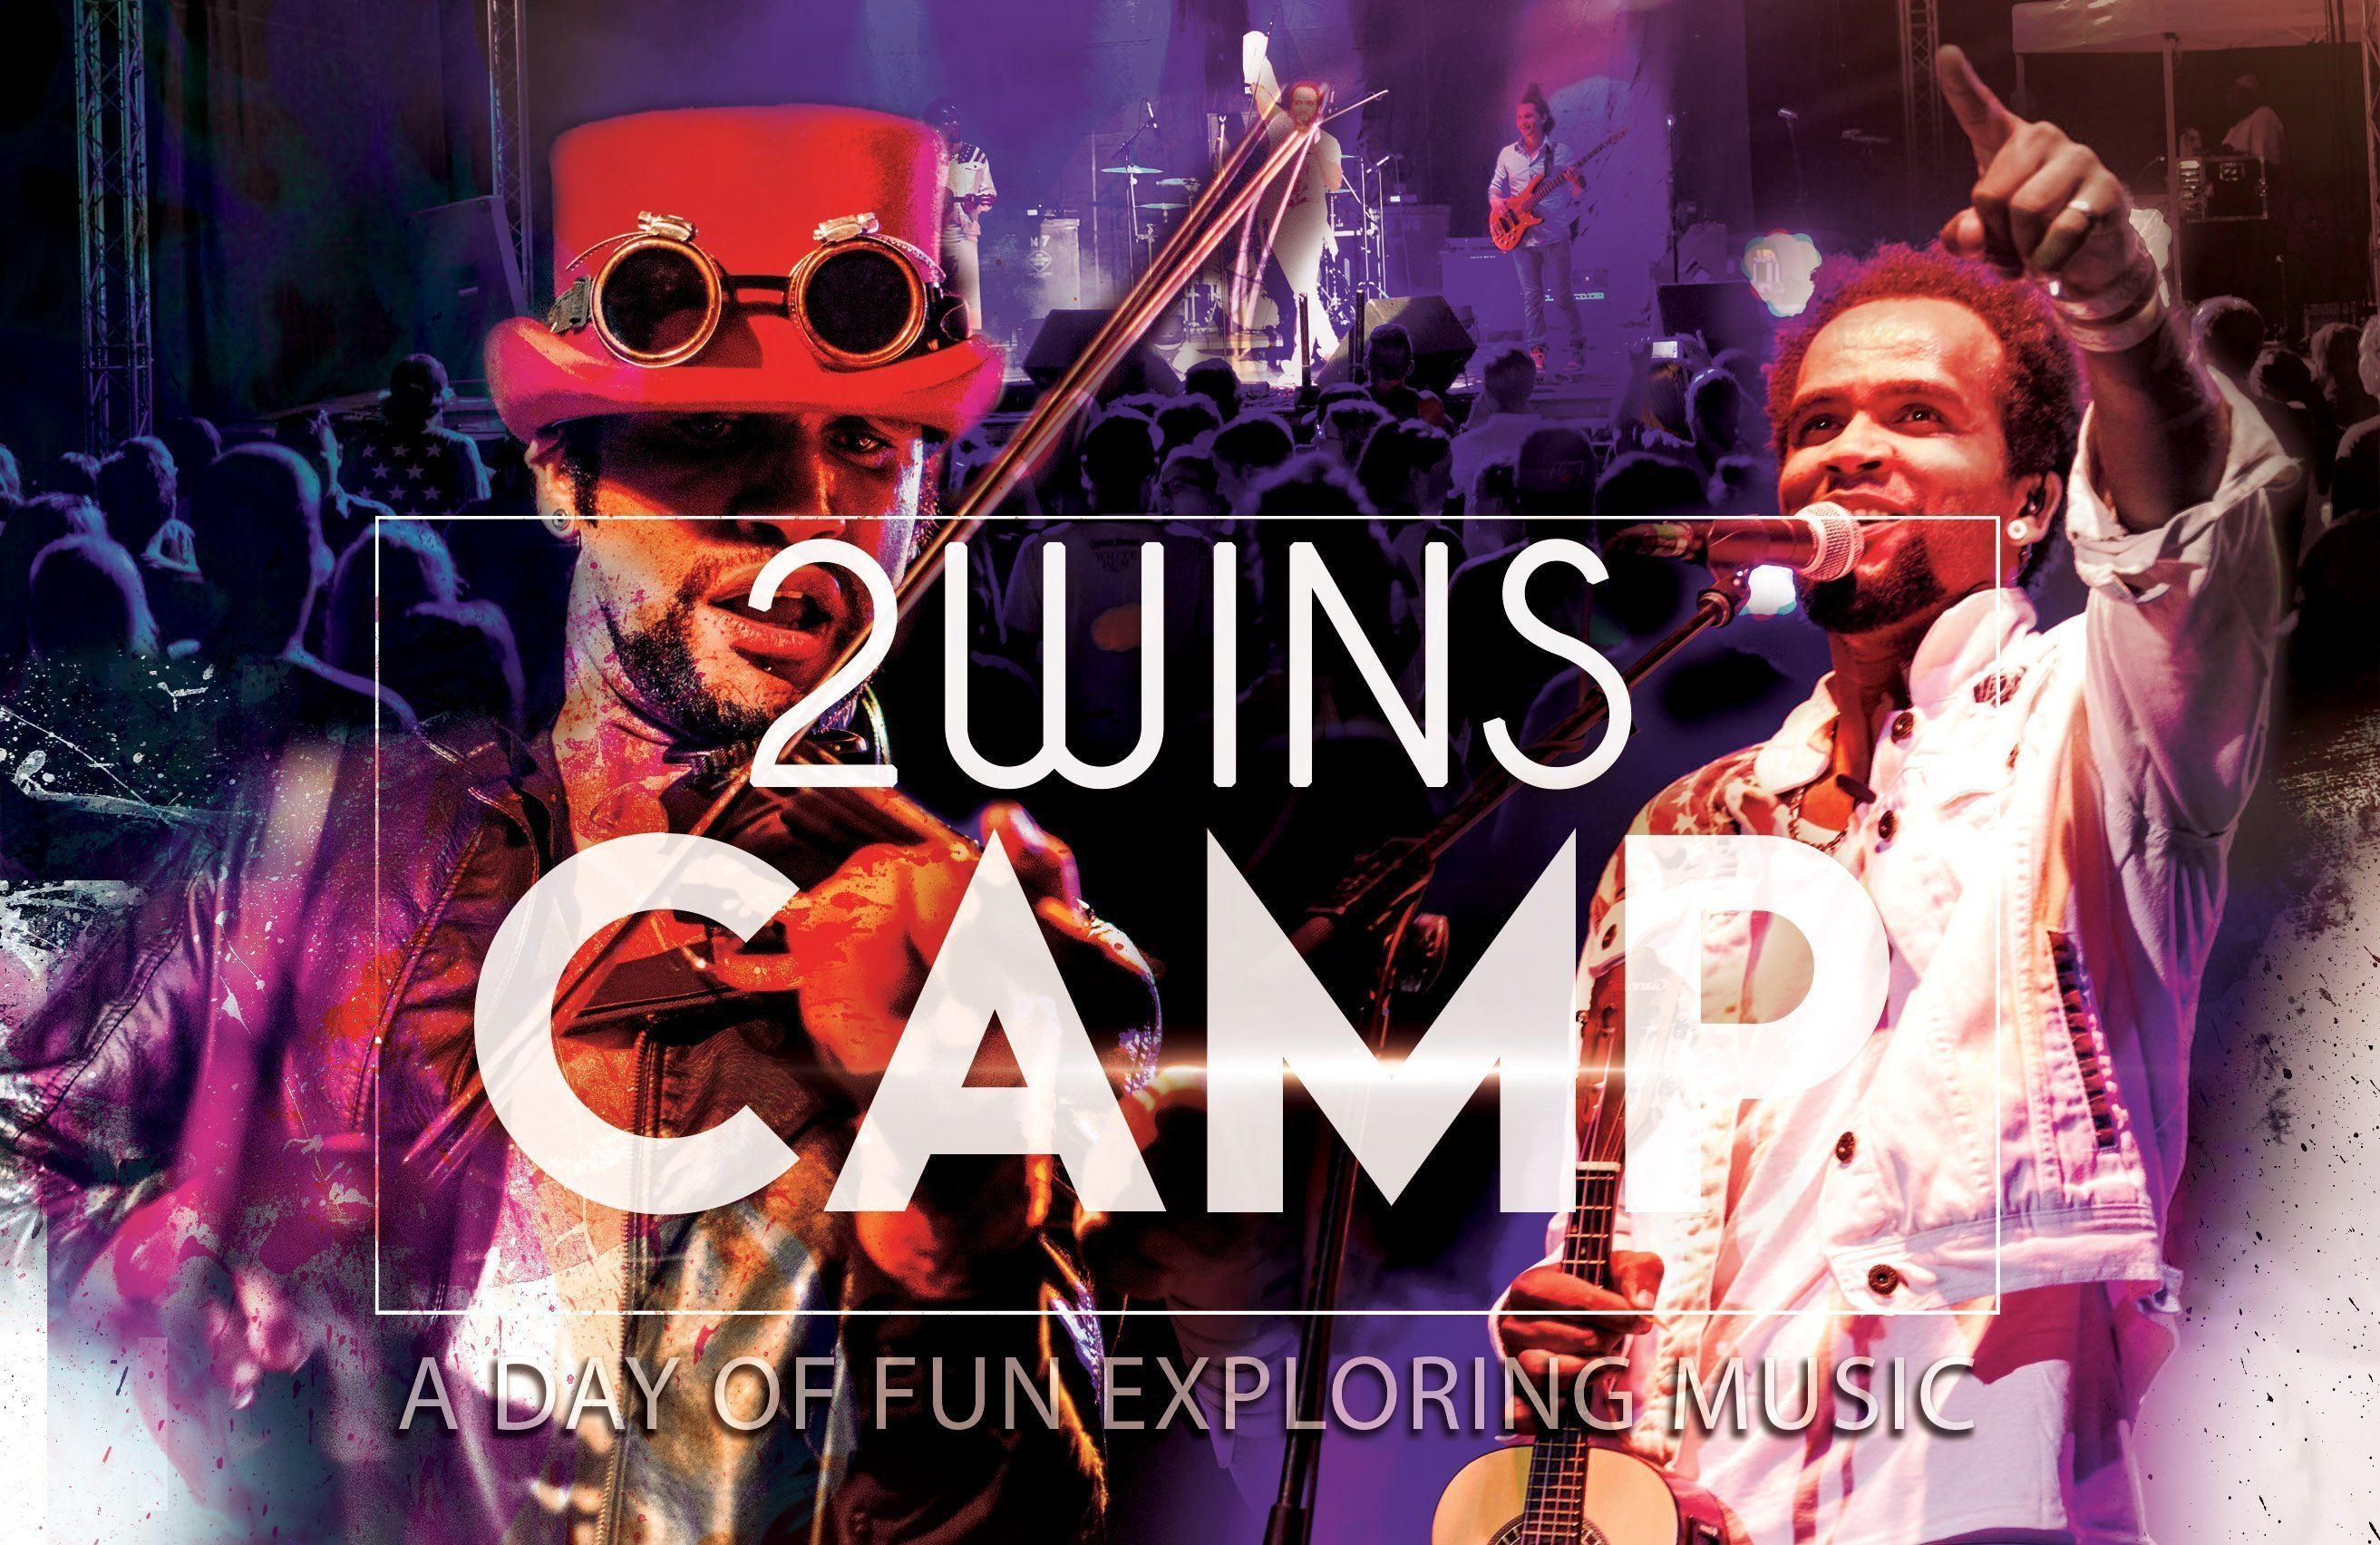 2wins Camps – A Day of Fun Exploring Music